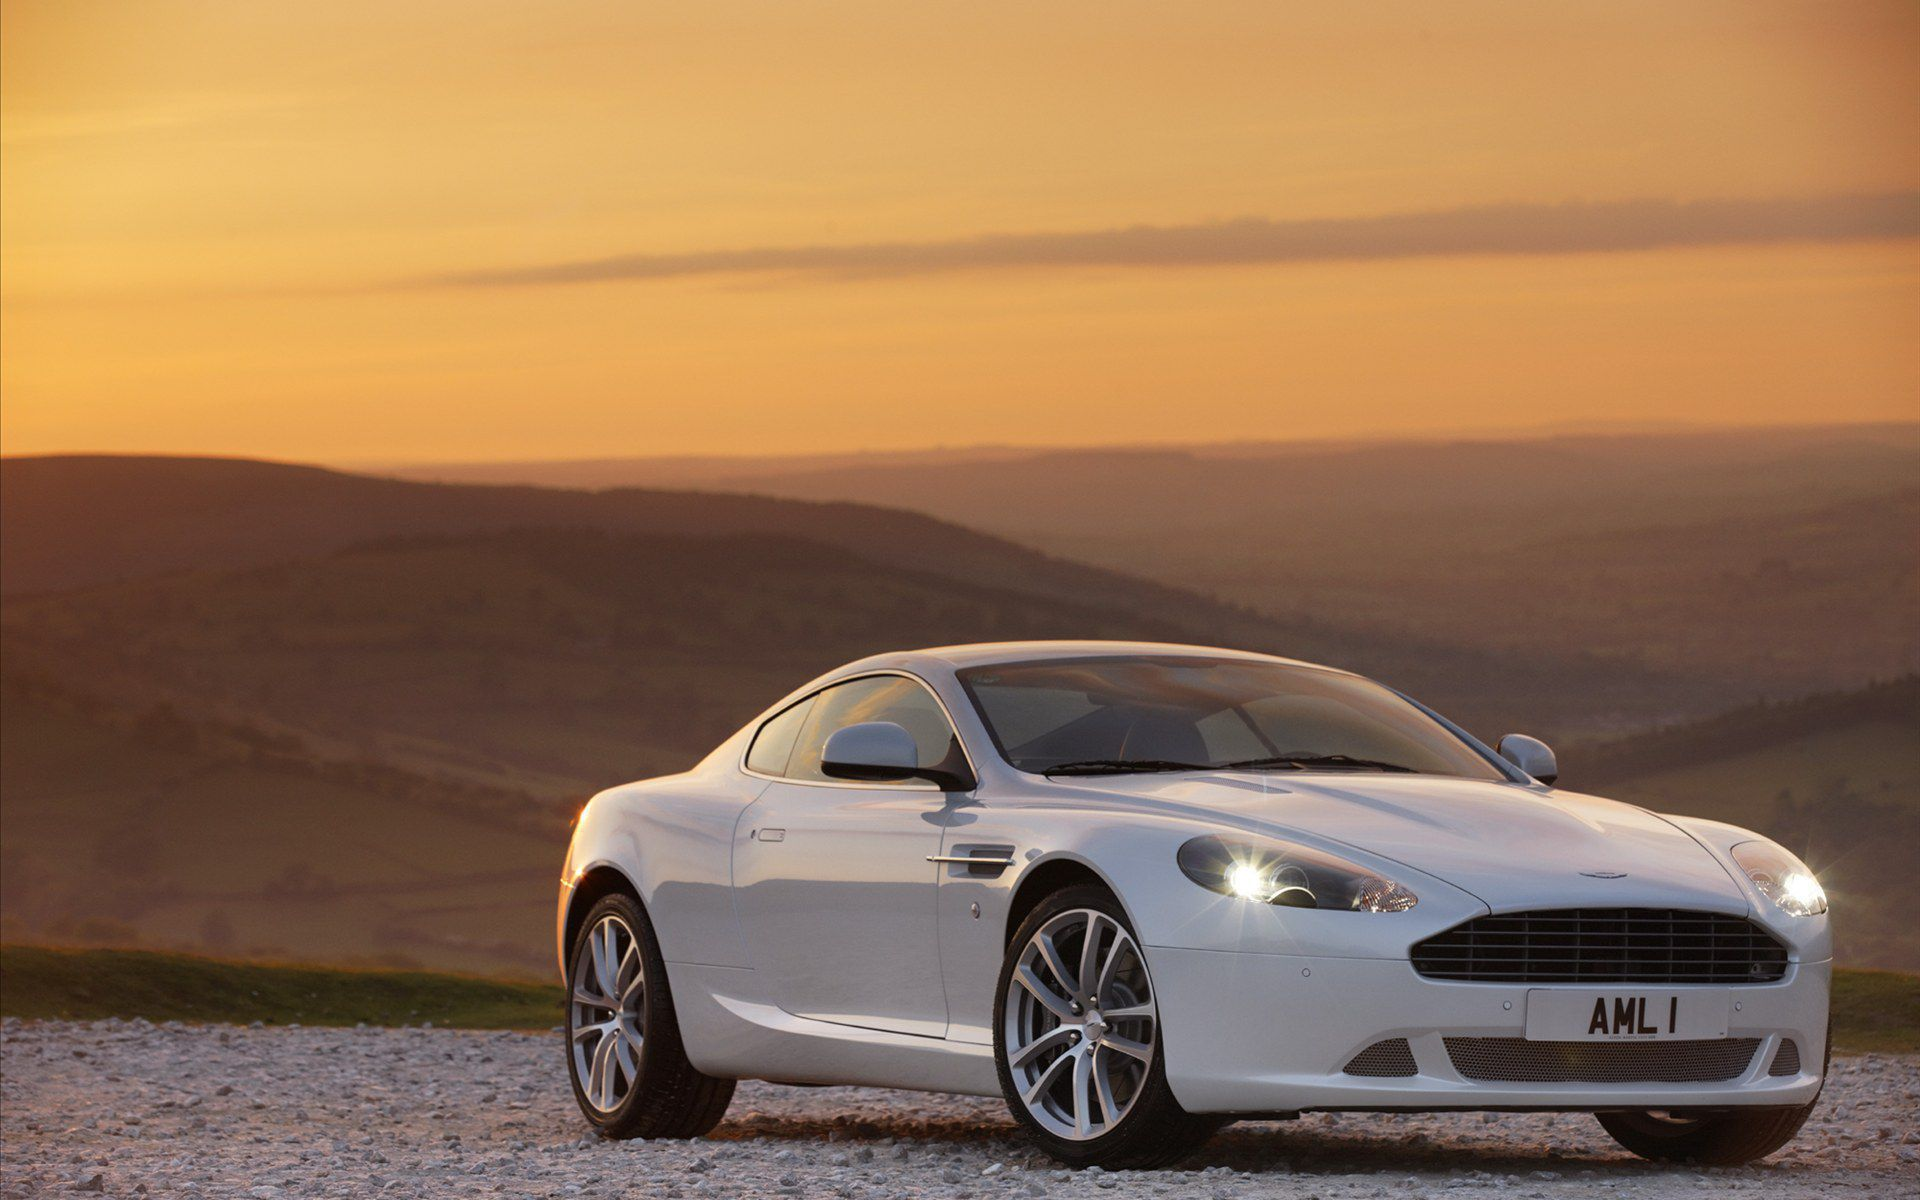 Aston Martin Db9 High Quality Wallpapers